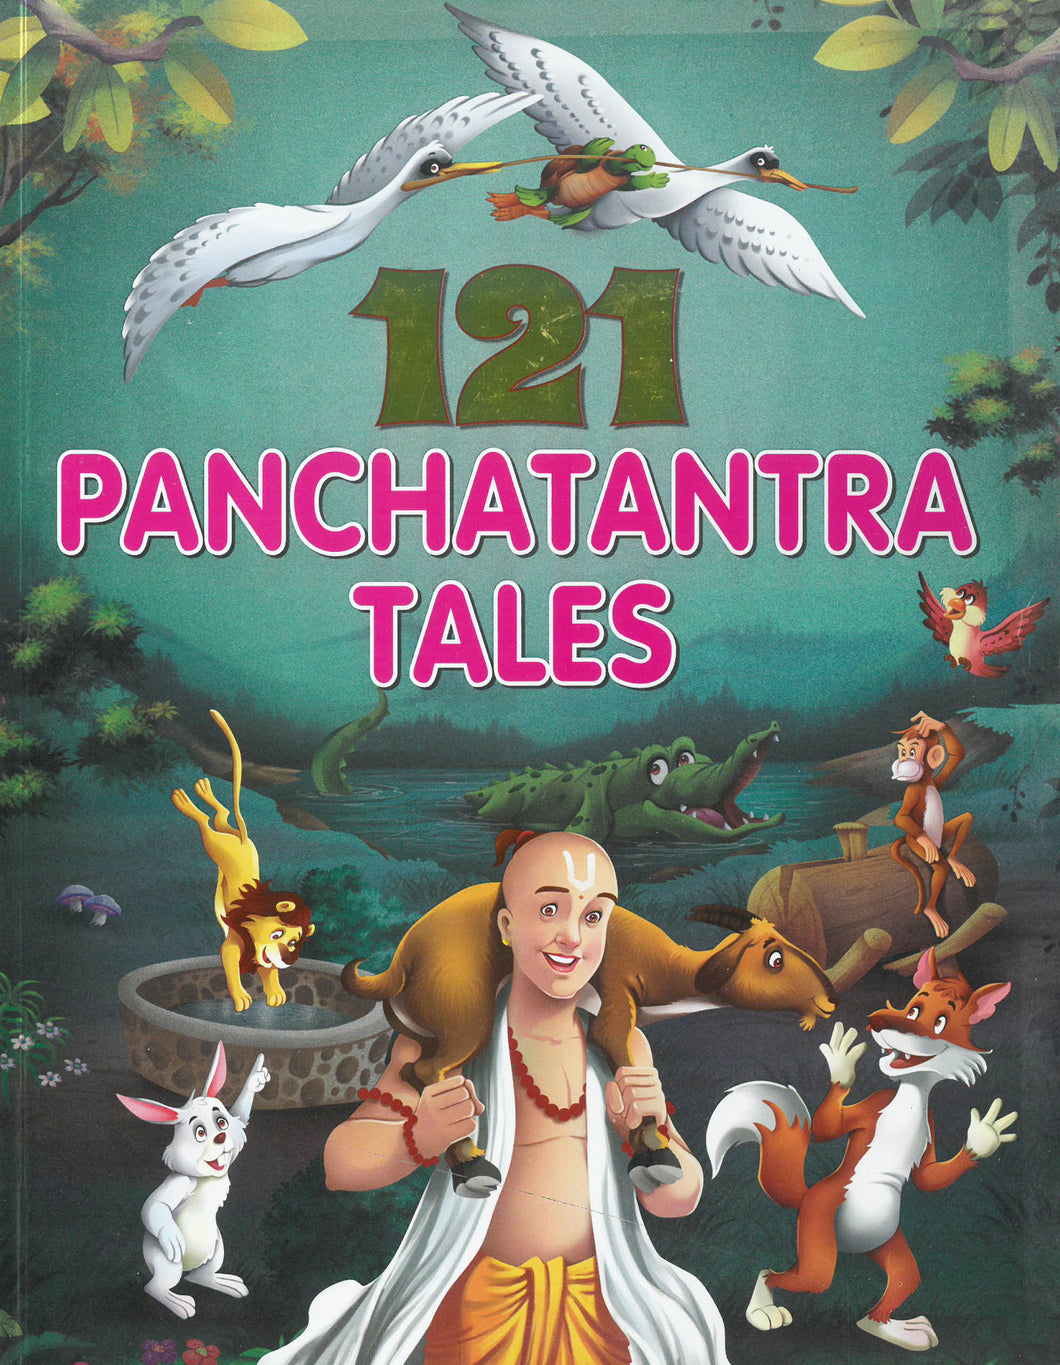 Panchatantra story books are very important in the formative years of each child.